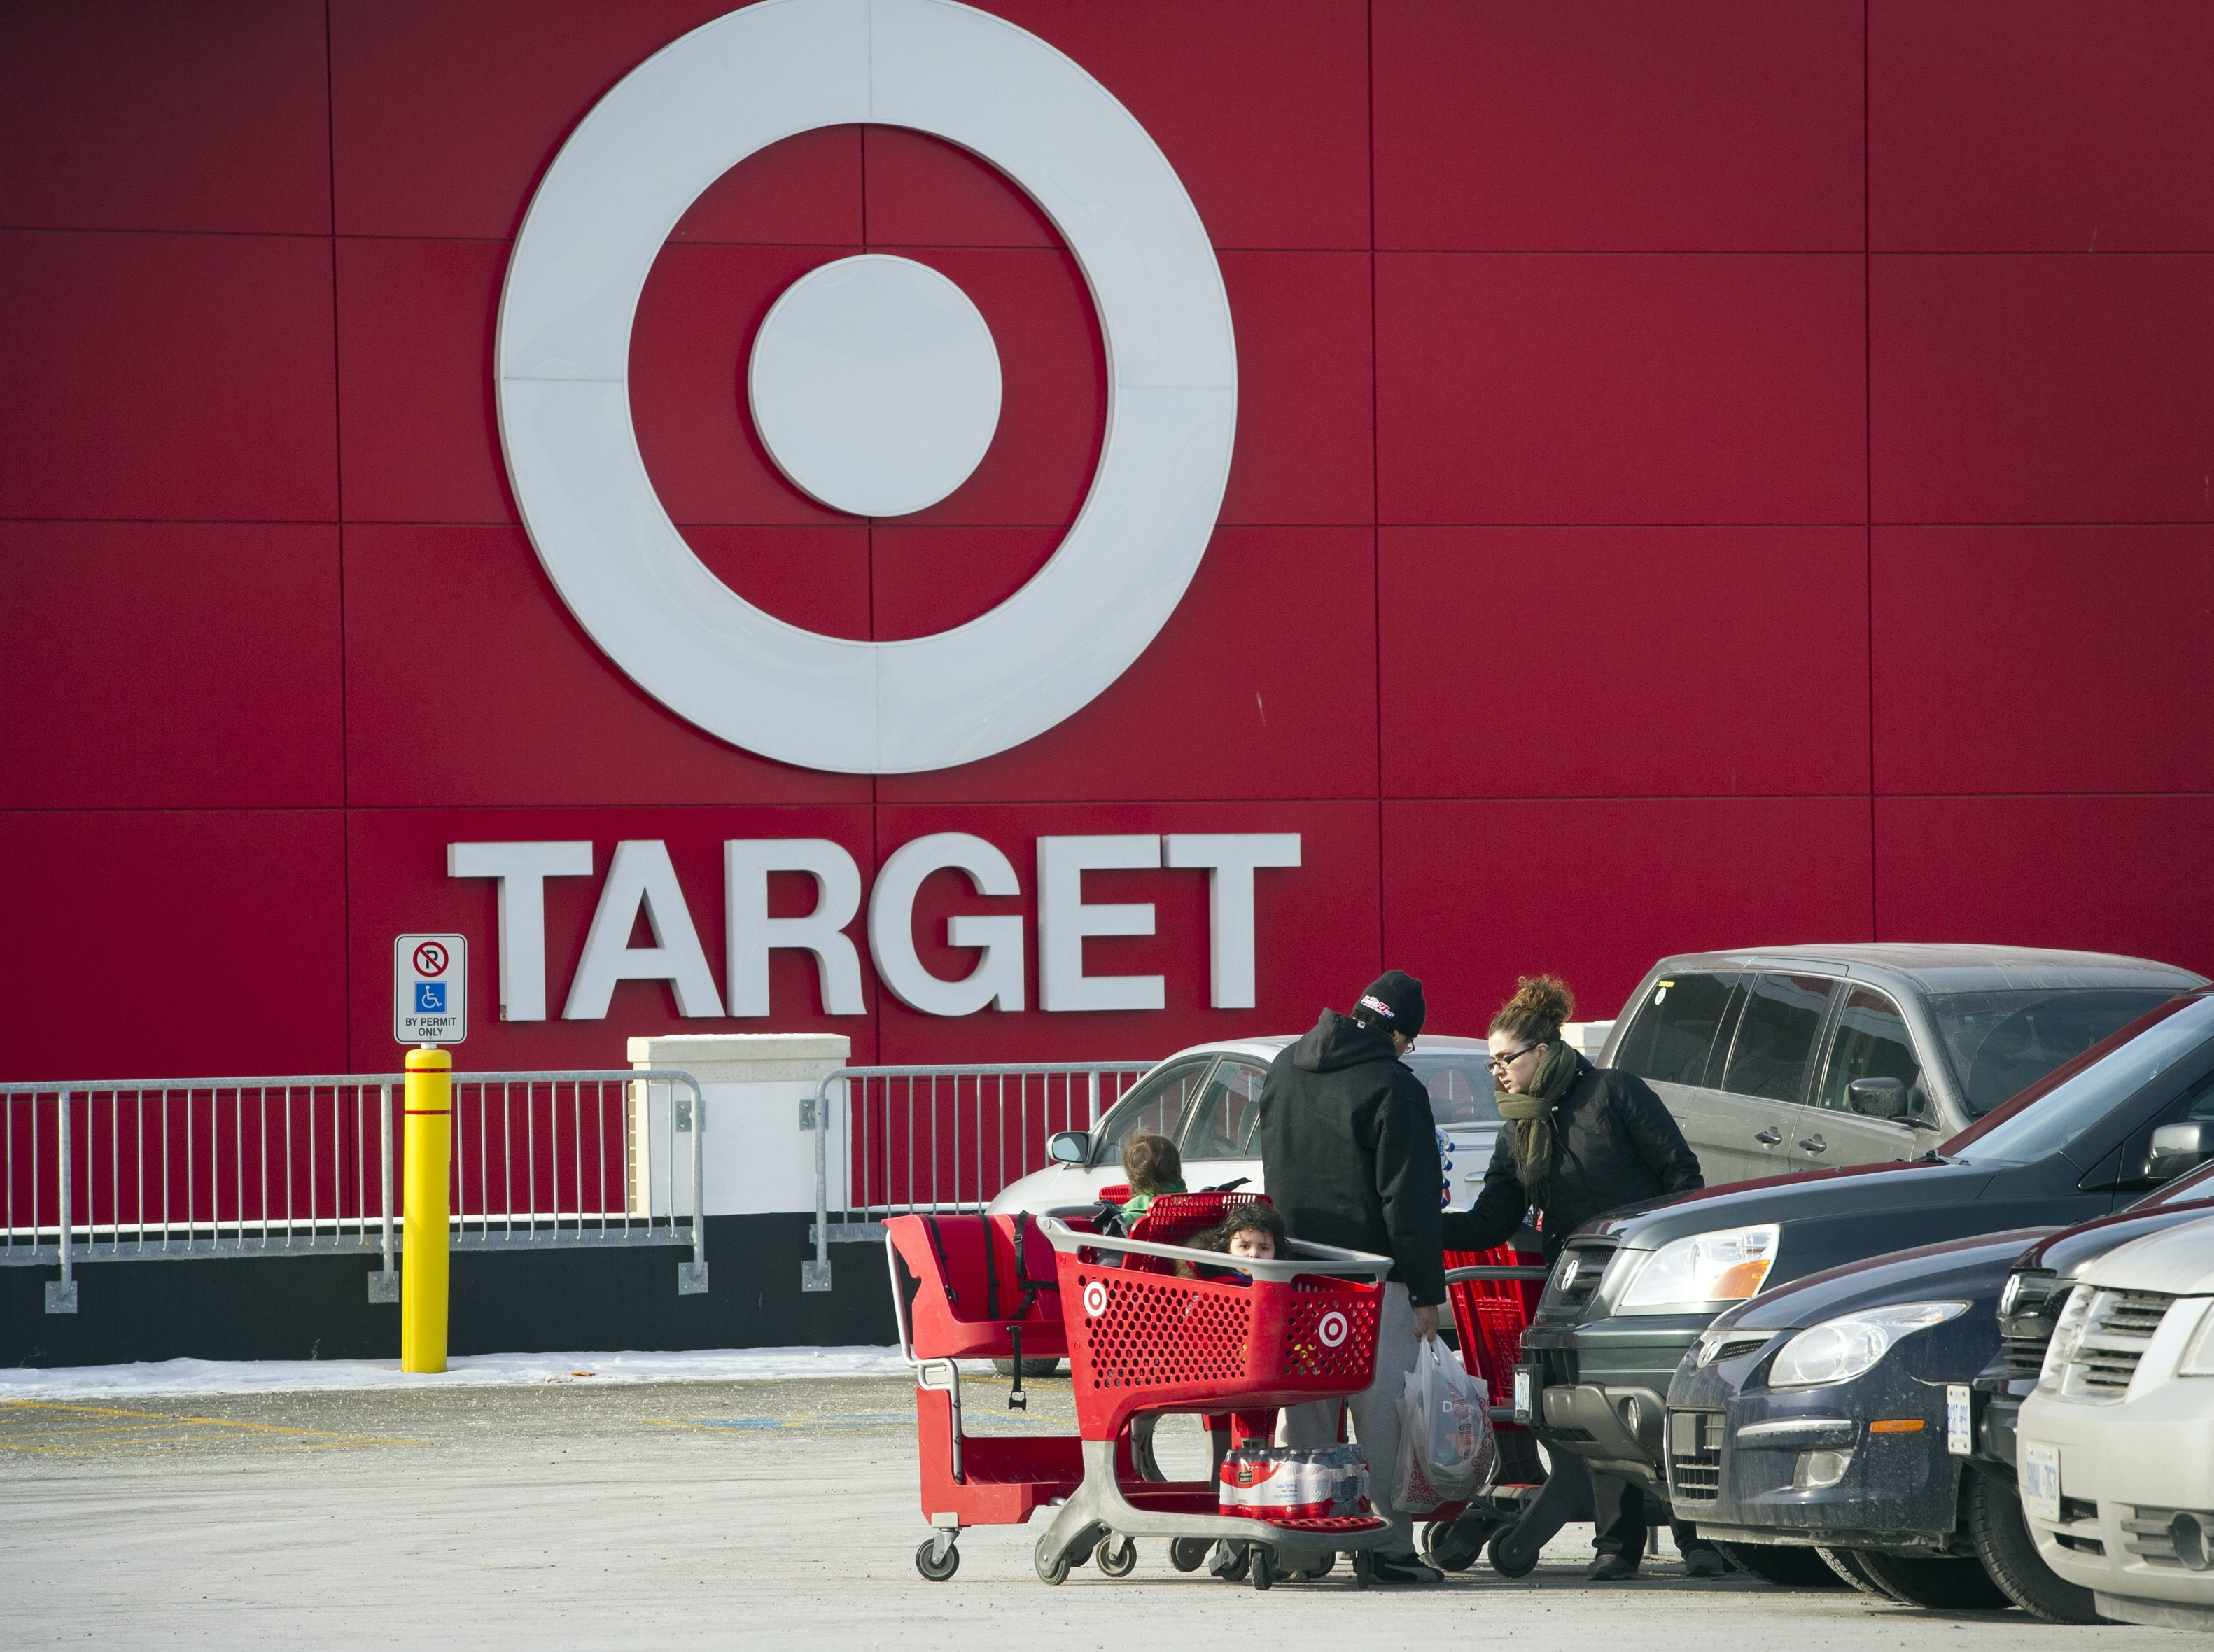 Target plans to cut thousands of jobs and focus on its stores in an attempt to right its balance sheet. (Bloomberg photo)